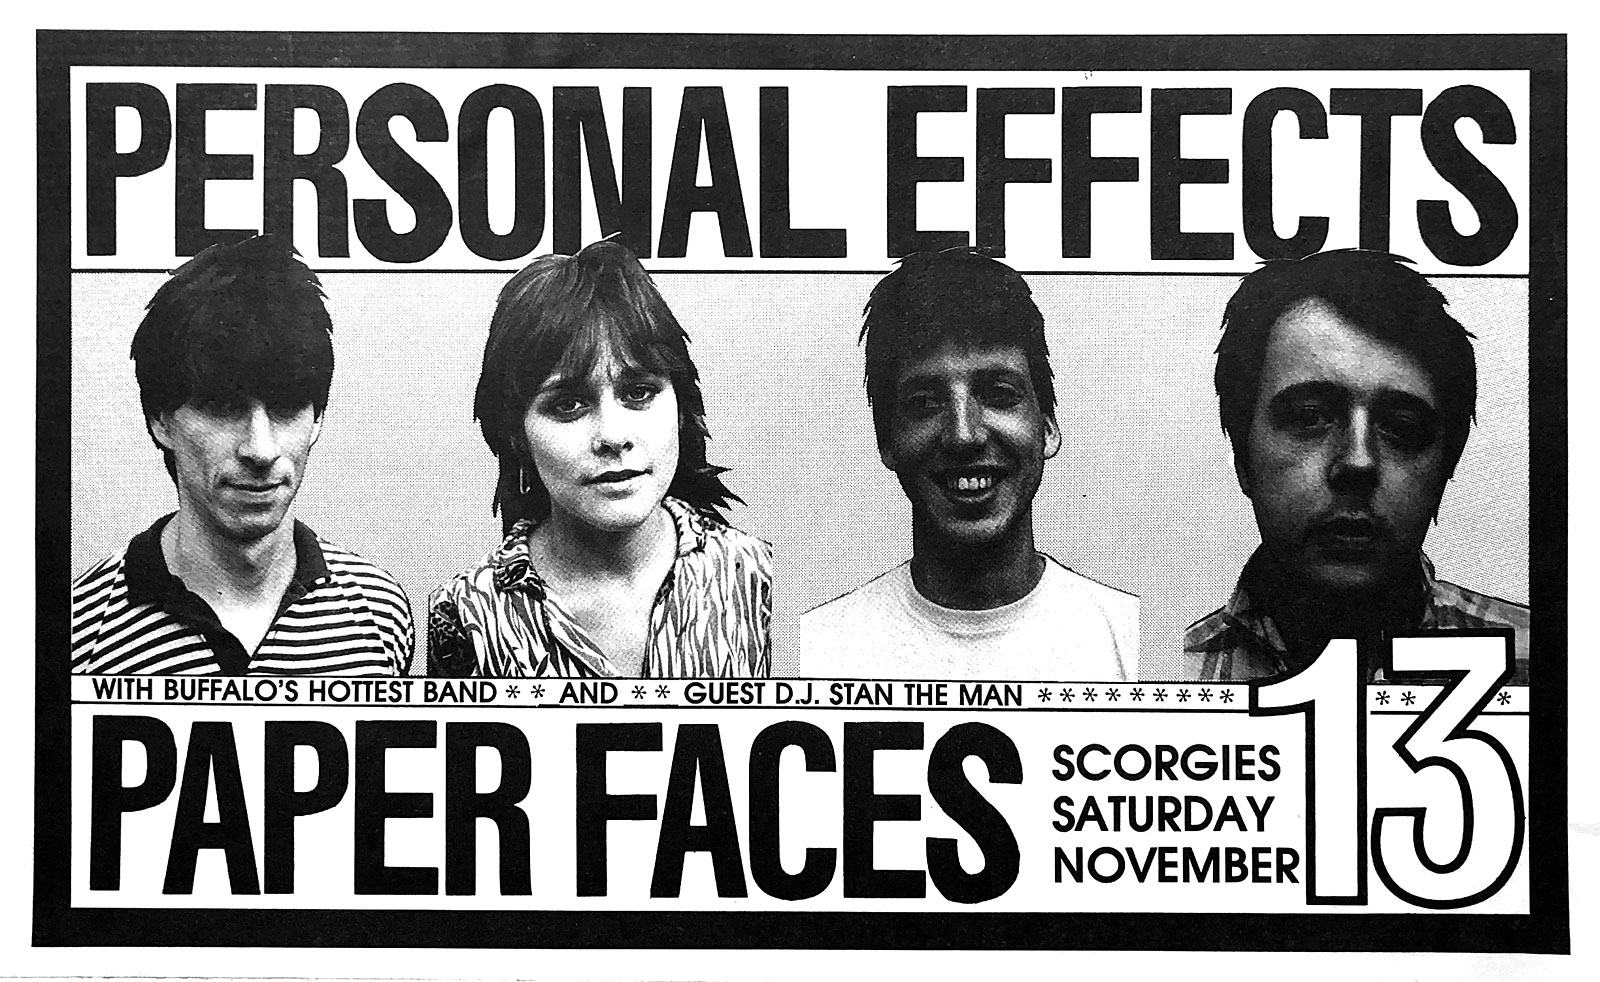 Poster for Personal Effects with Paper Faces at Scorgie's in Rochester, New York on 11.13.1983